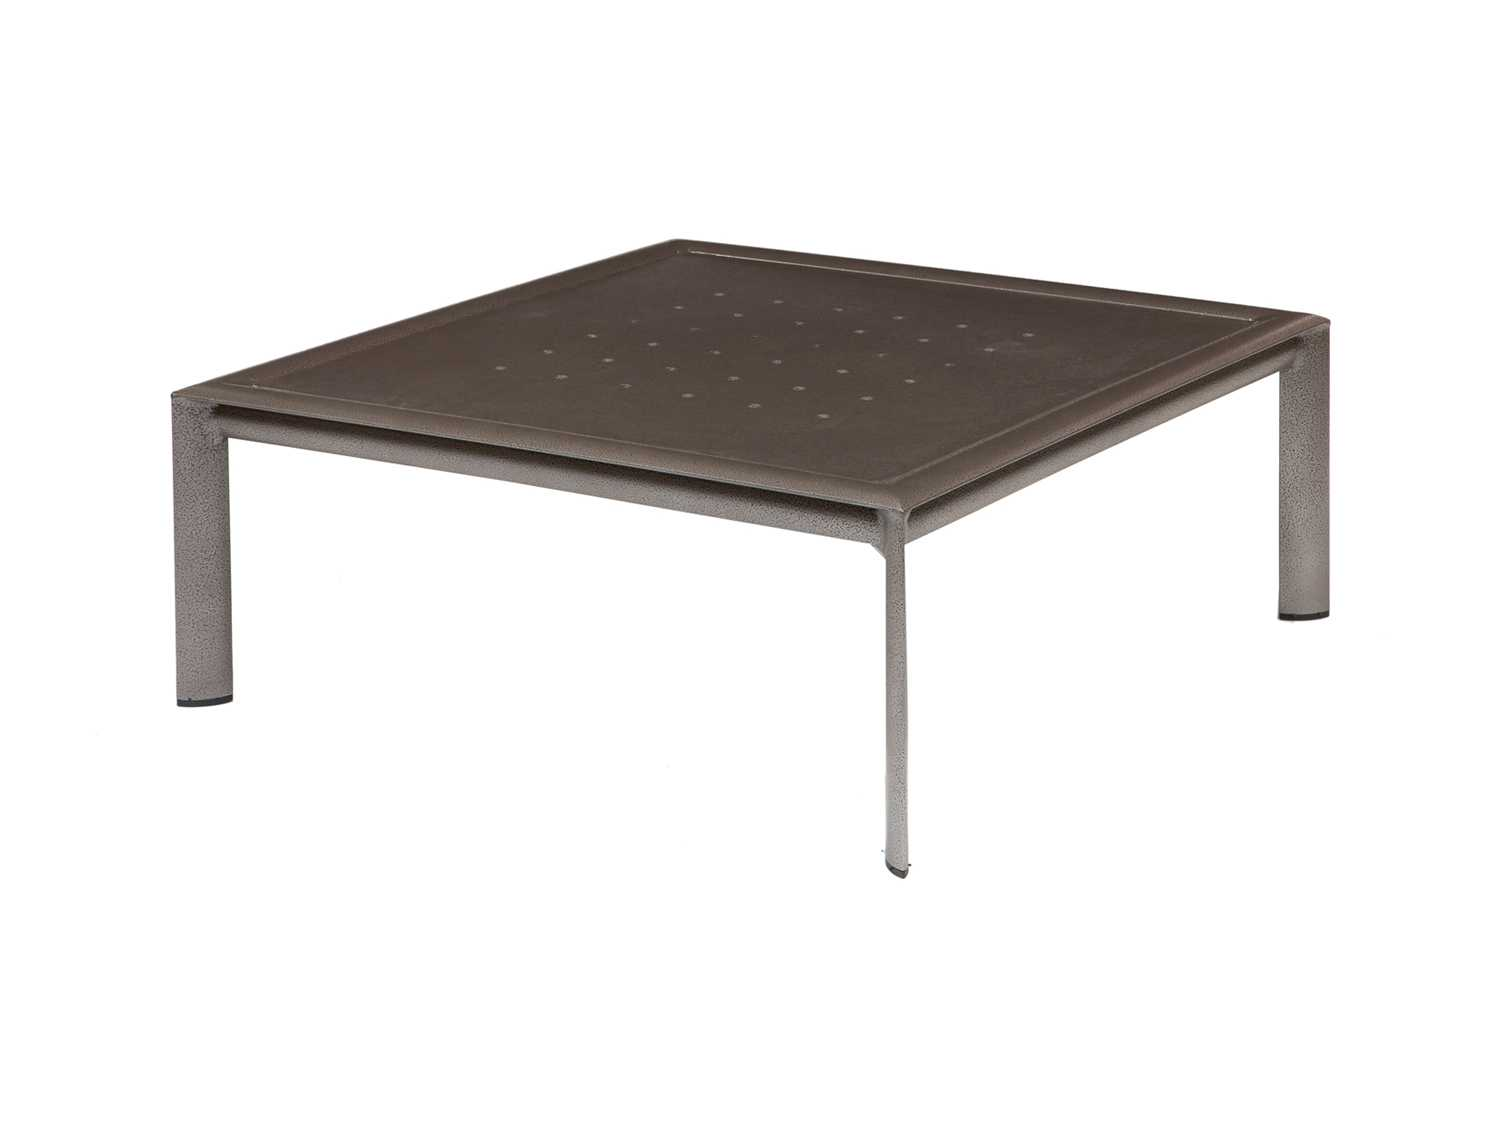 Winston Southern Cay Modular Aluminum 35 39 39 Square Coffee Table Fully Welded Wsm35007